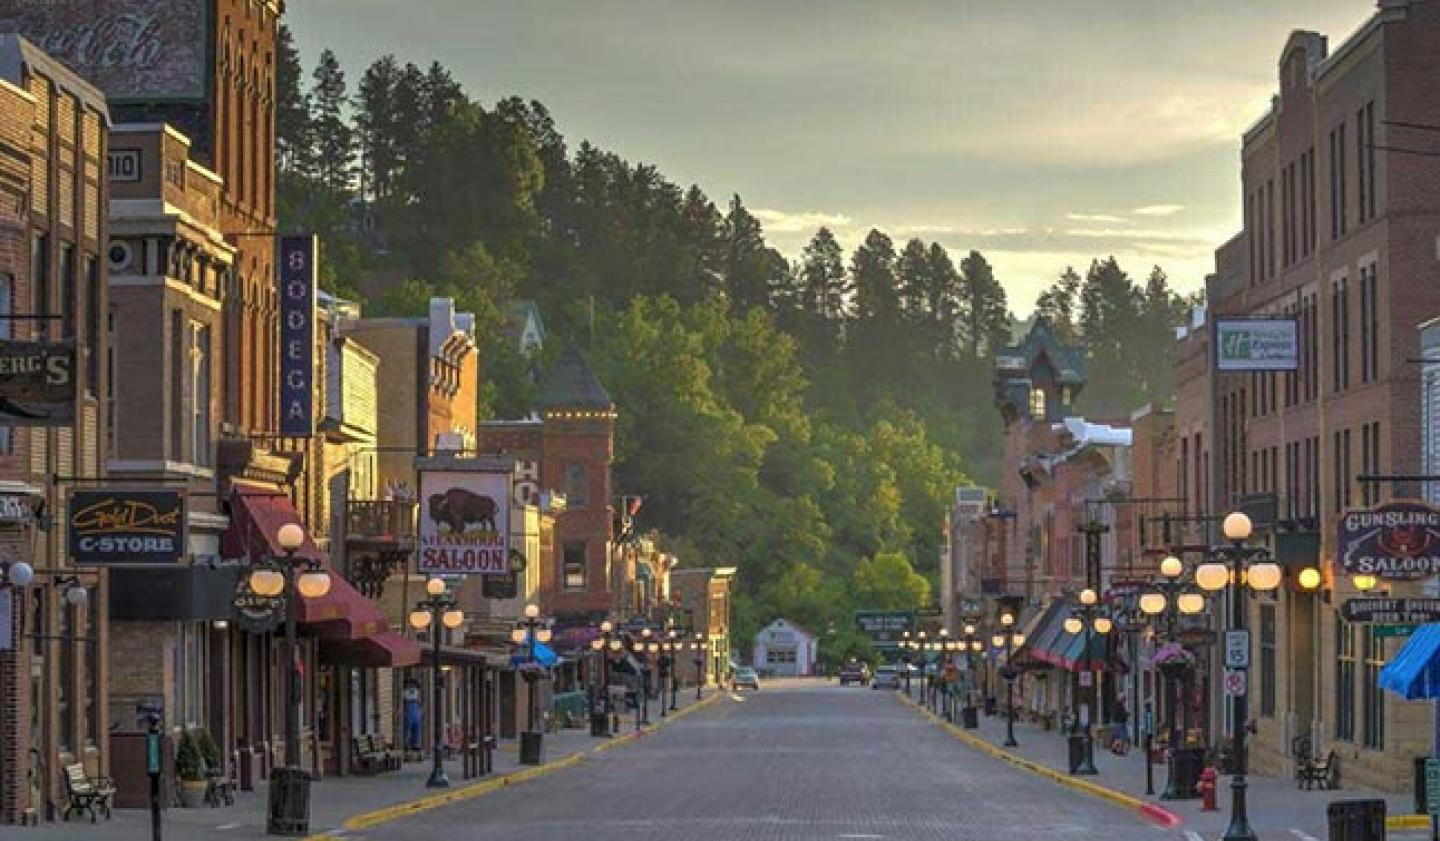 Historic Deadwood